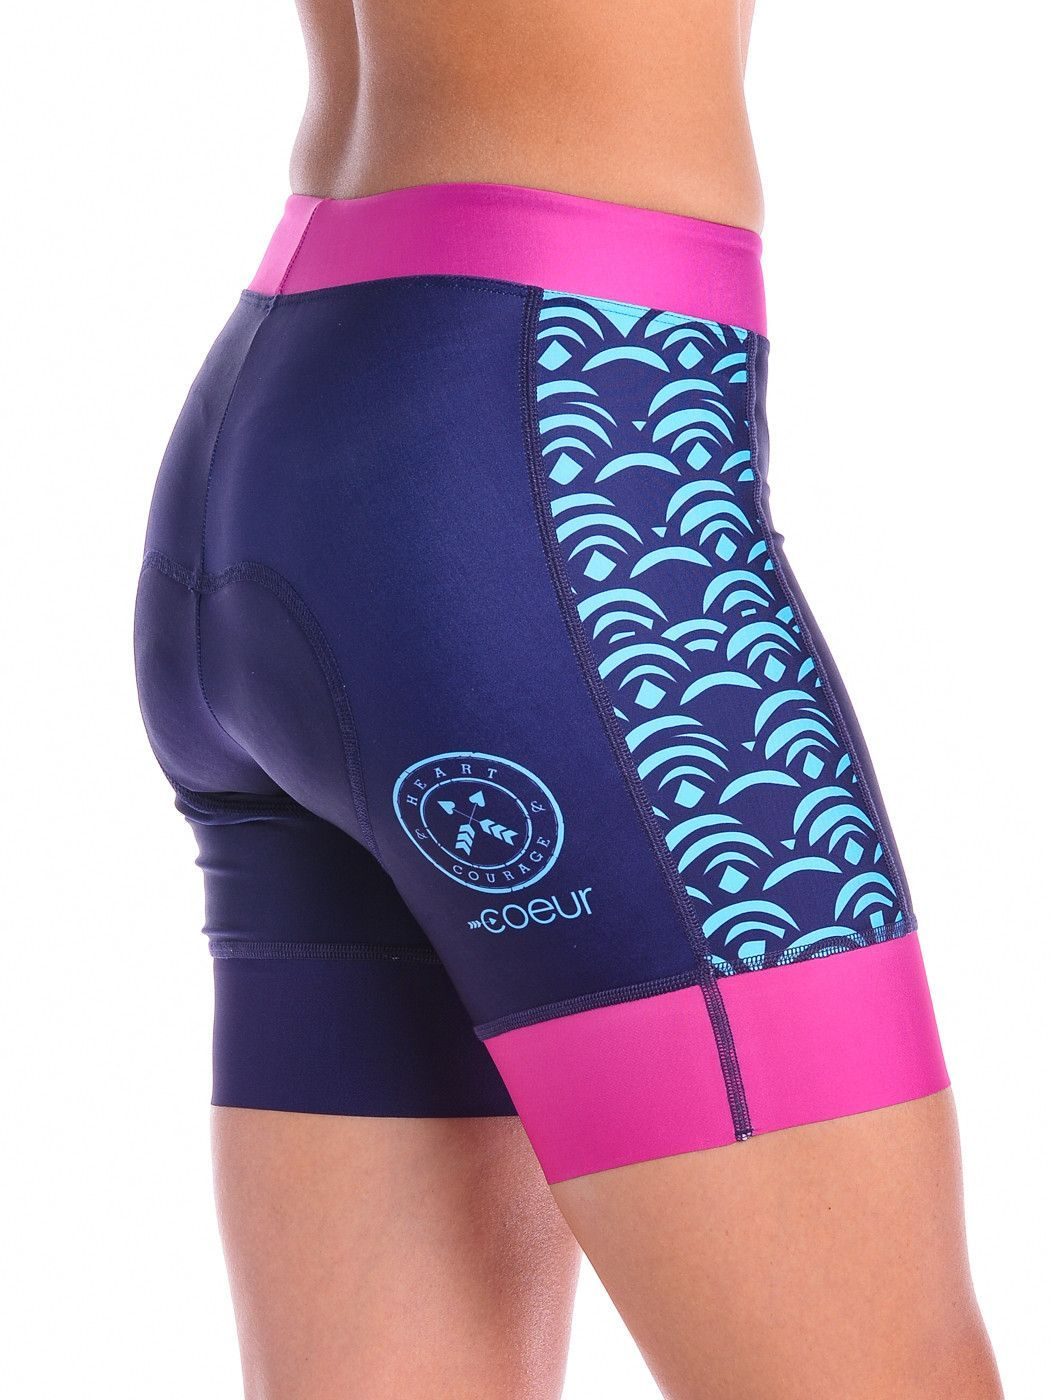 Women S Padded Cycling Shorts In Hapuna Design Cycling Women Padded Cycling Shorts Cycling Outfit